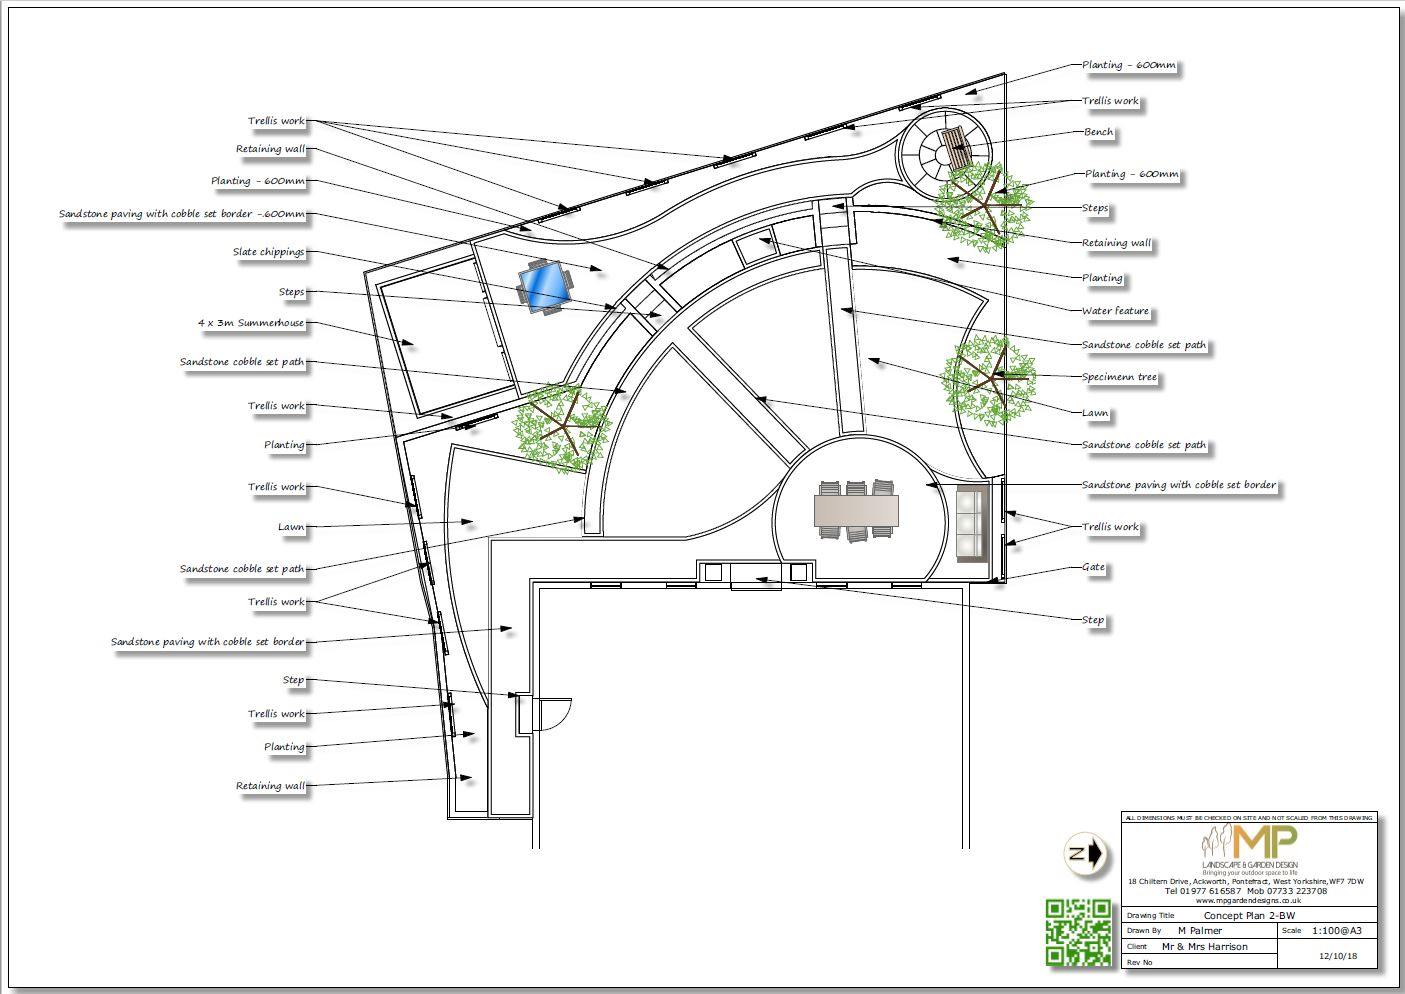 Black and whiteconcept plan-2 for a rear garden in Wistow, North Yorshire.